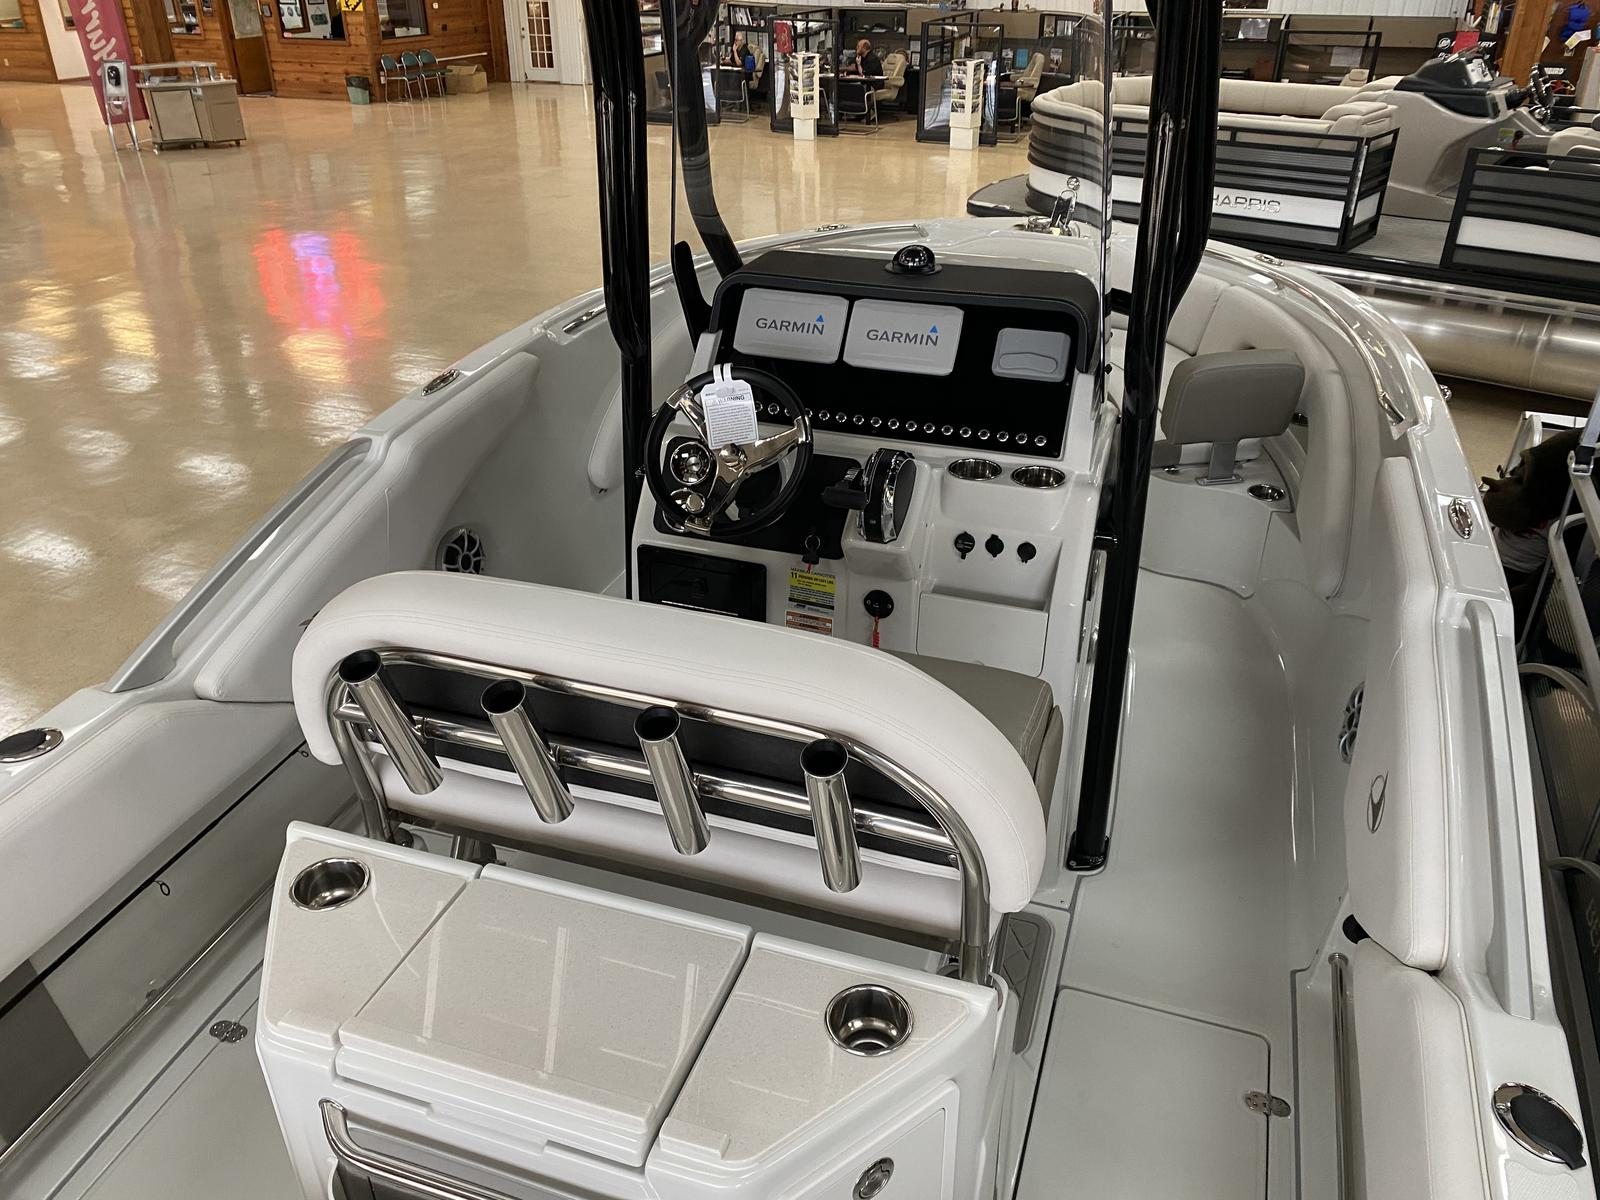 2021 Finseeker boat for sale, model of the boat is 220 Center Console & Image # 6 of 8